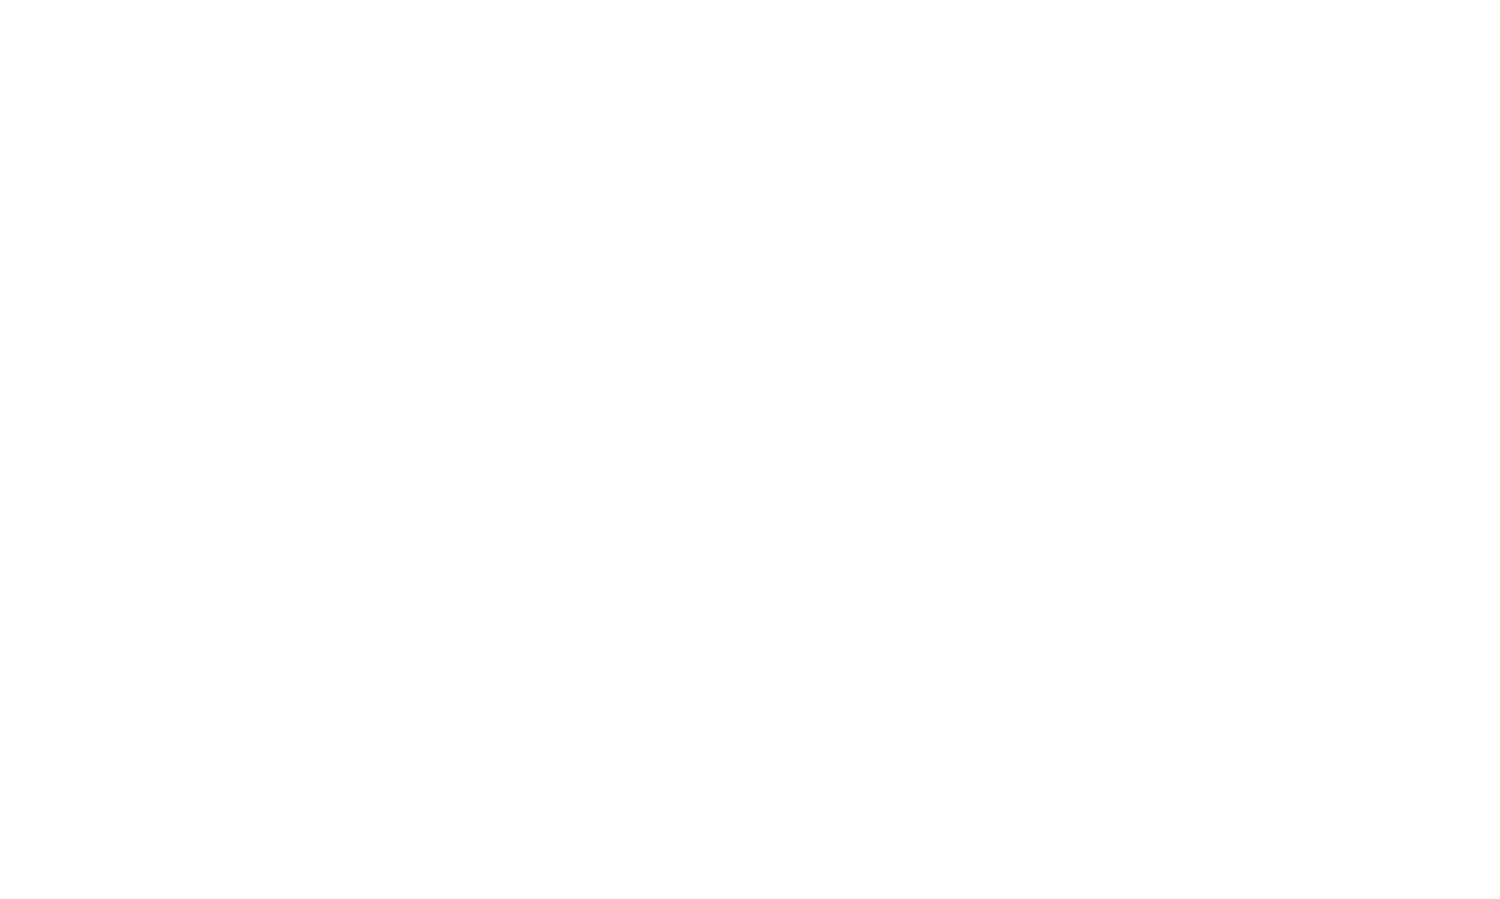 Feeding Hills Congregational Church